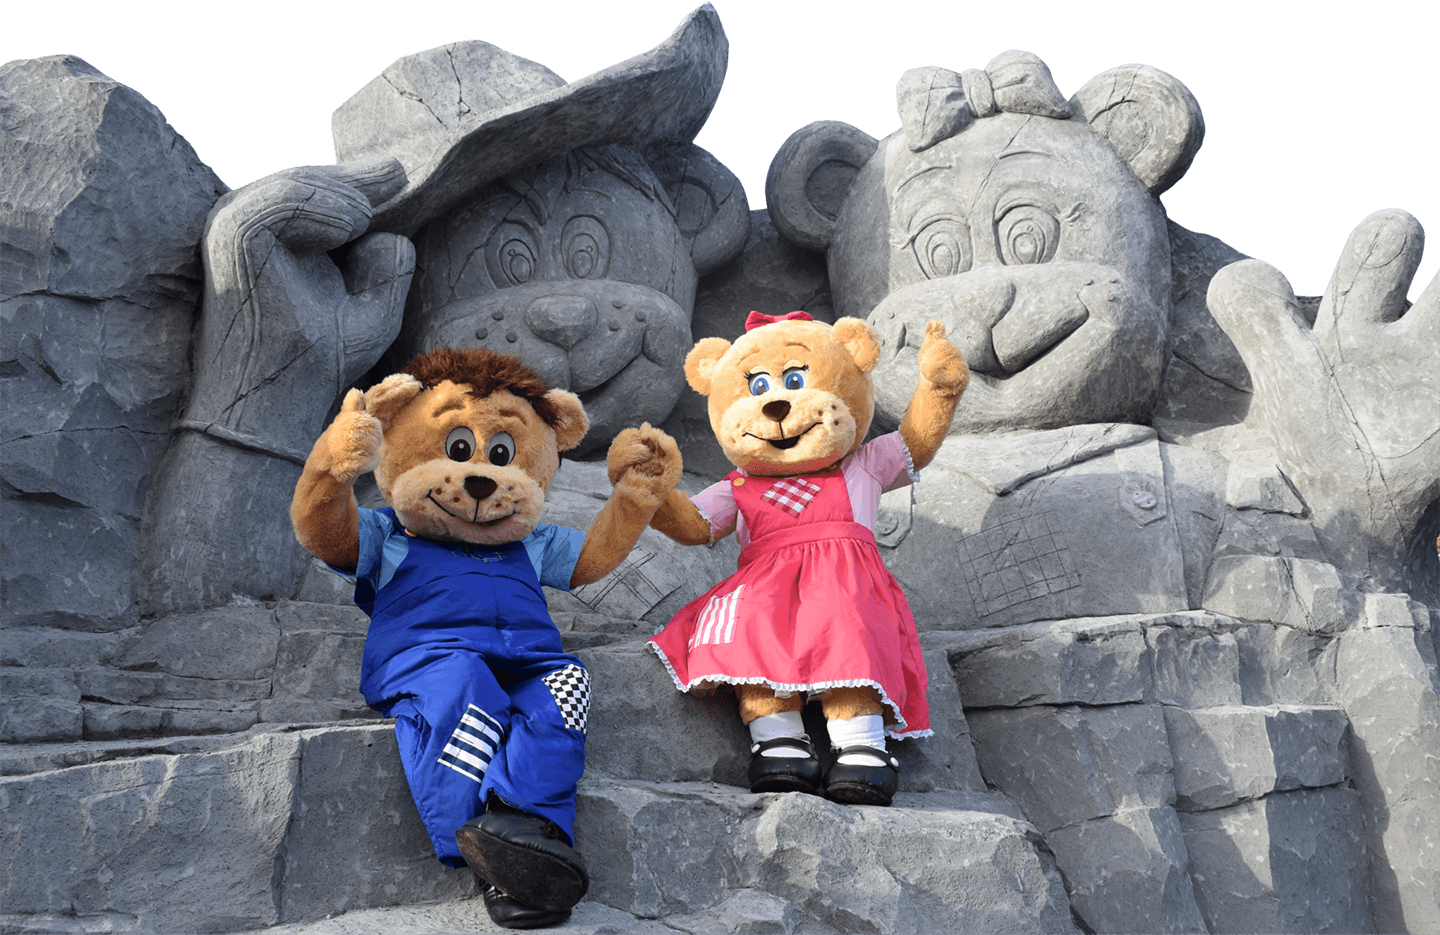 Big Bears and Statues at Sundown Adventure Land